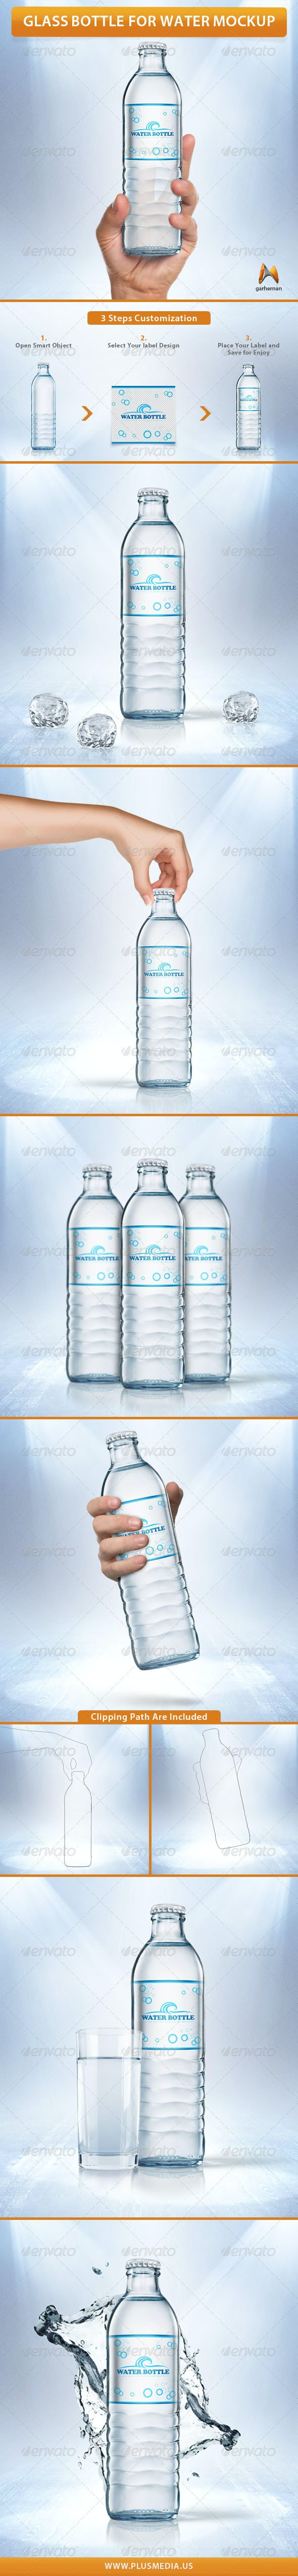 Glass Bottle for Water Mockup - Product Mock-Ups Graphics